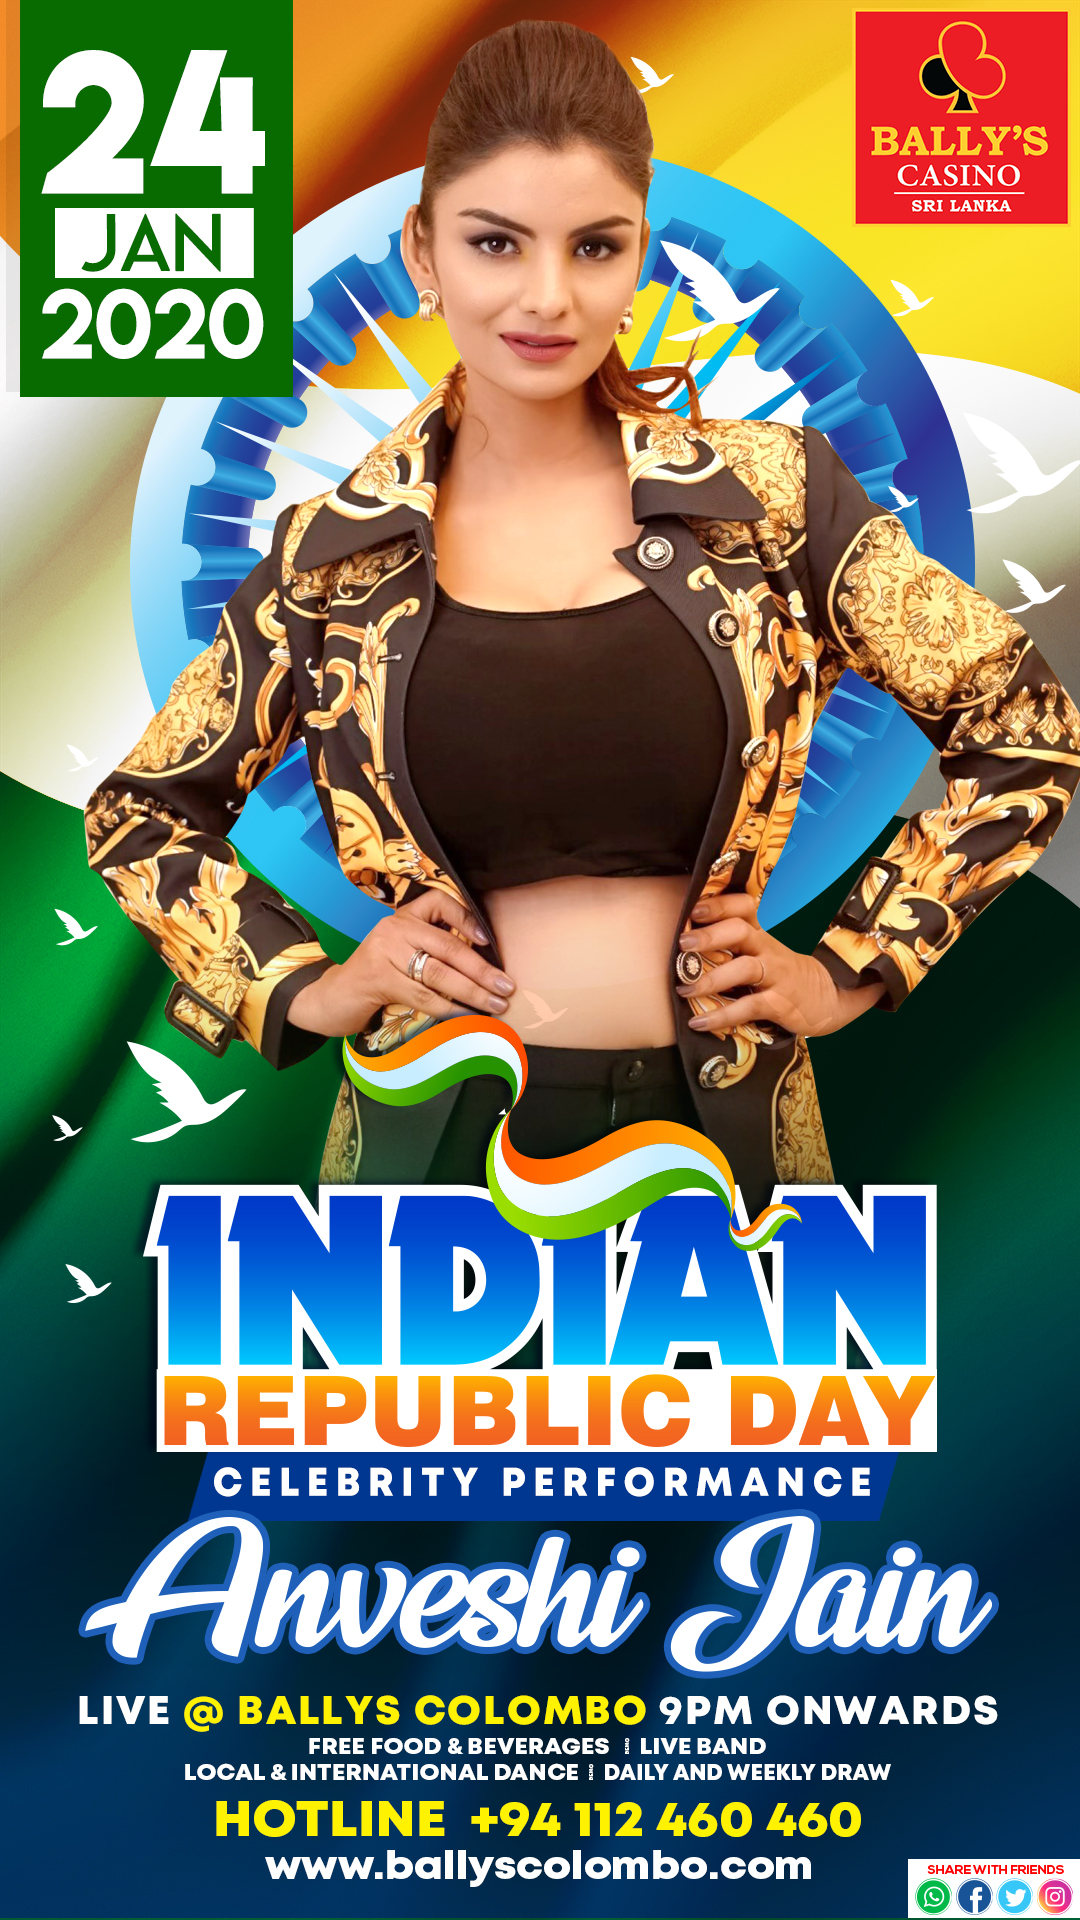 ballys-indian-republic-day-anveshi